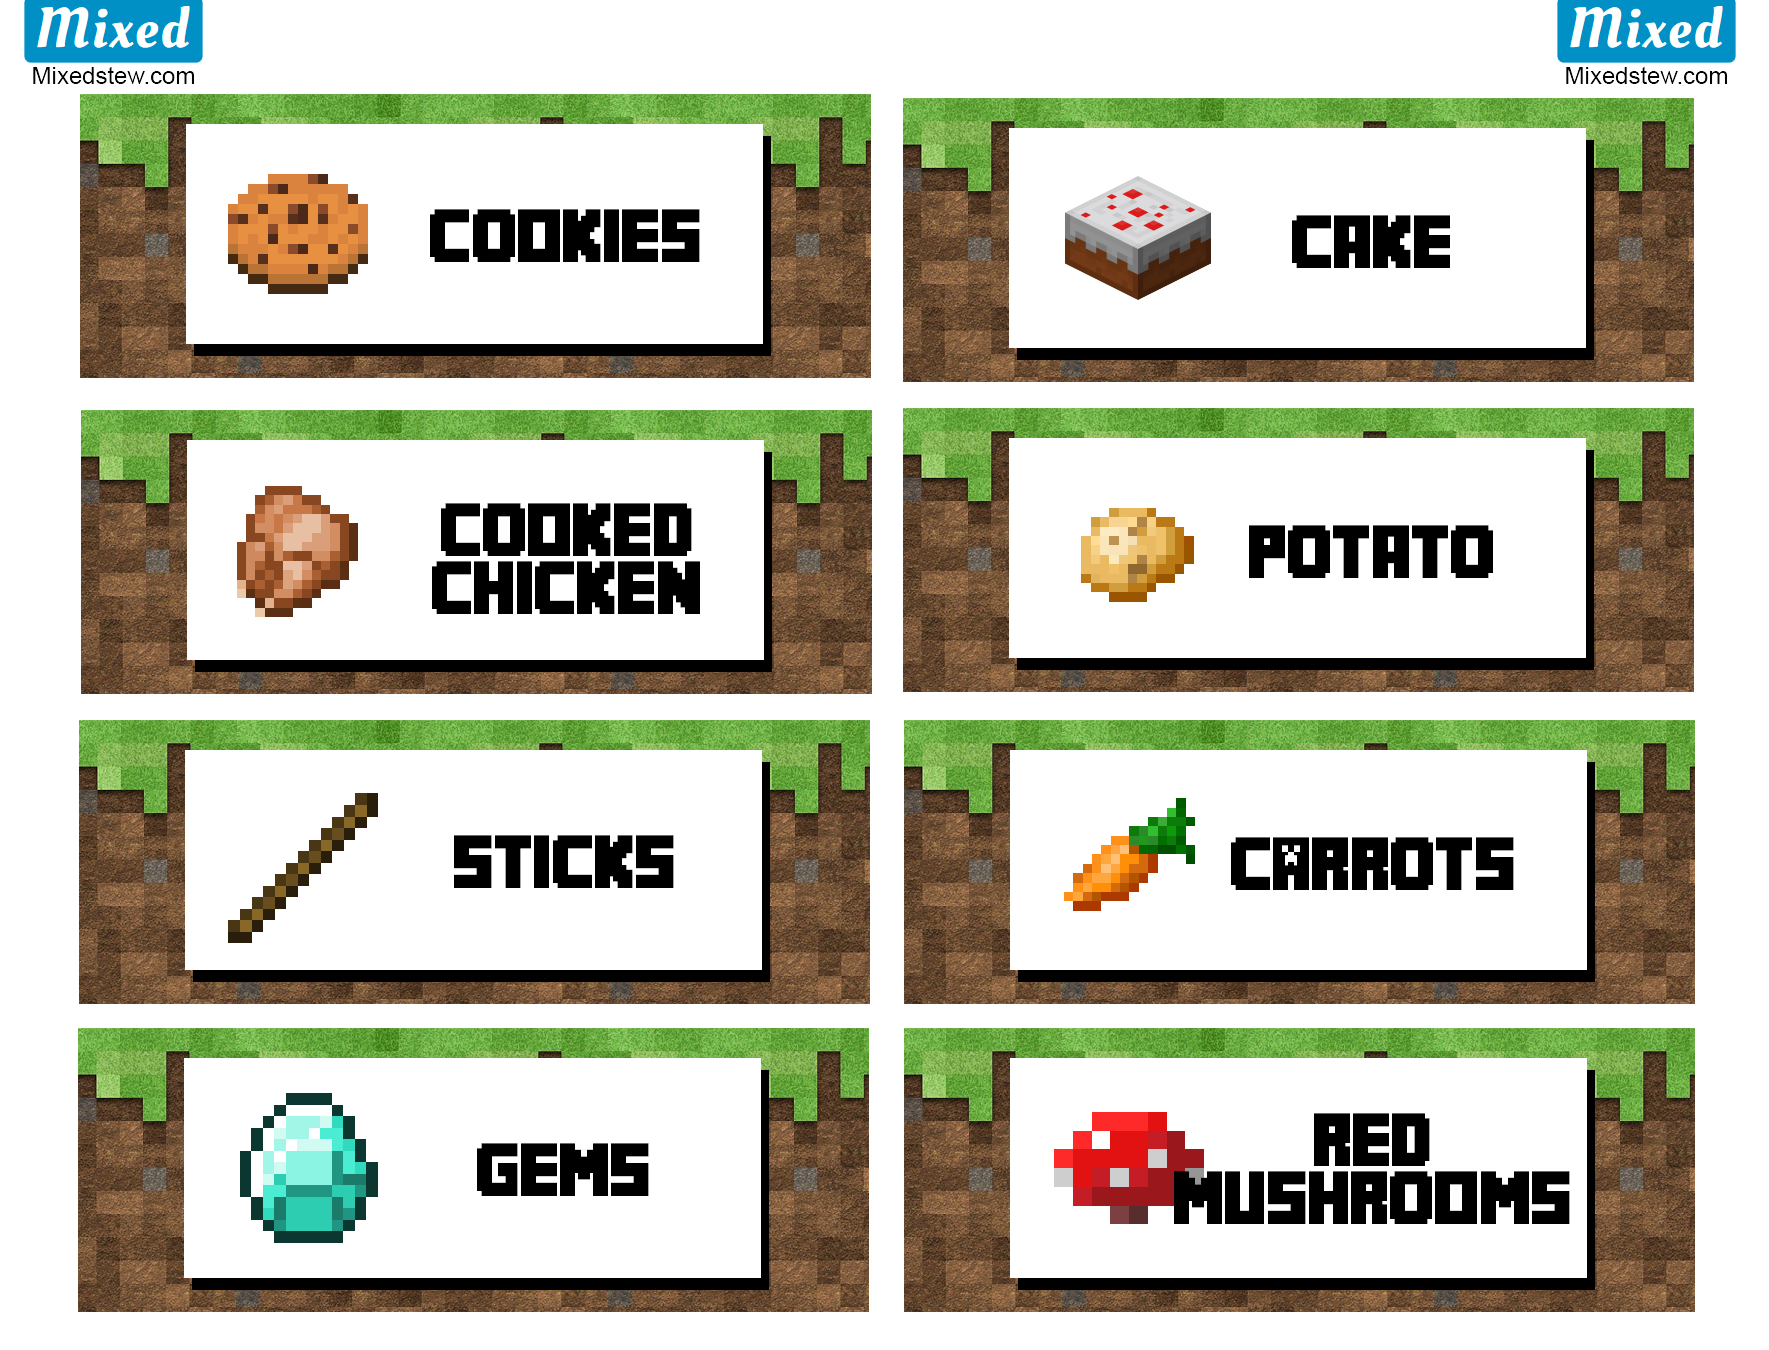 Ultimate Minecraft party printable food labels - Mixedstew ...